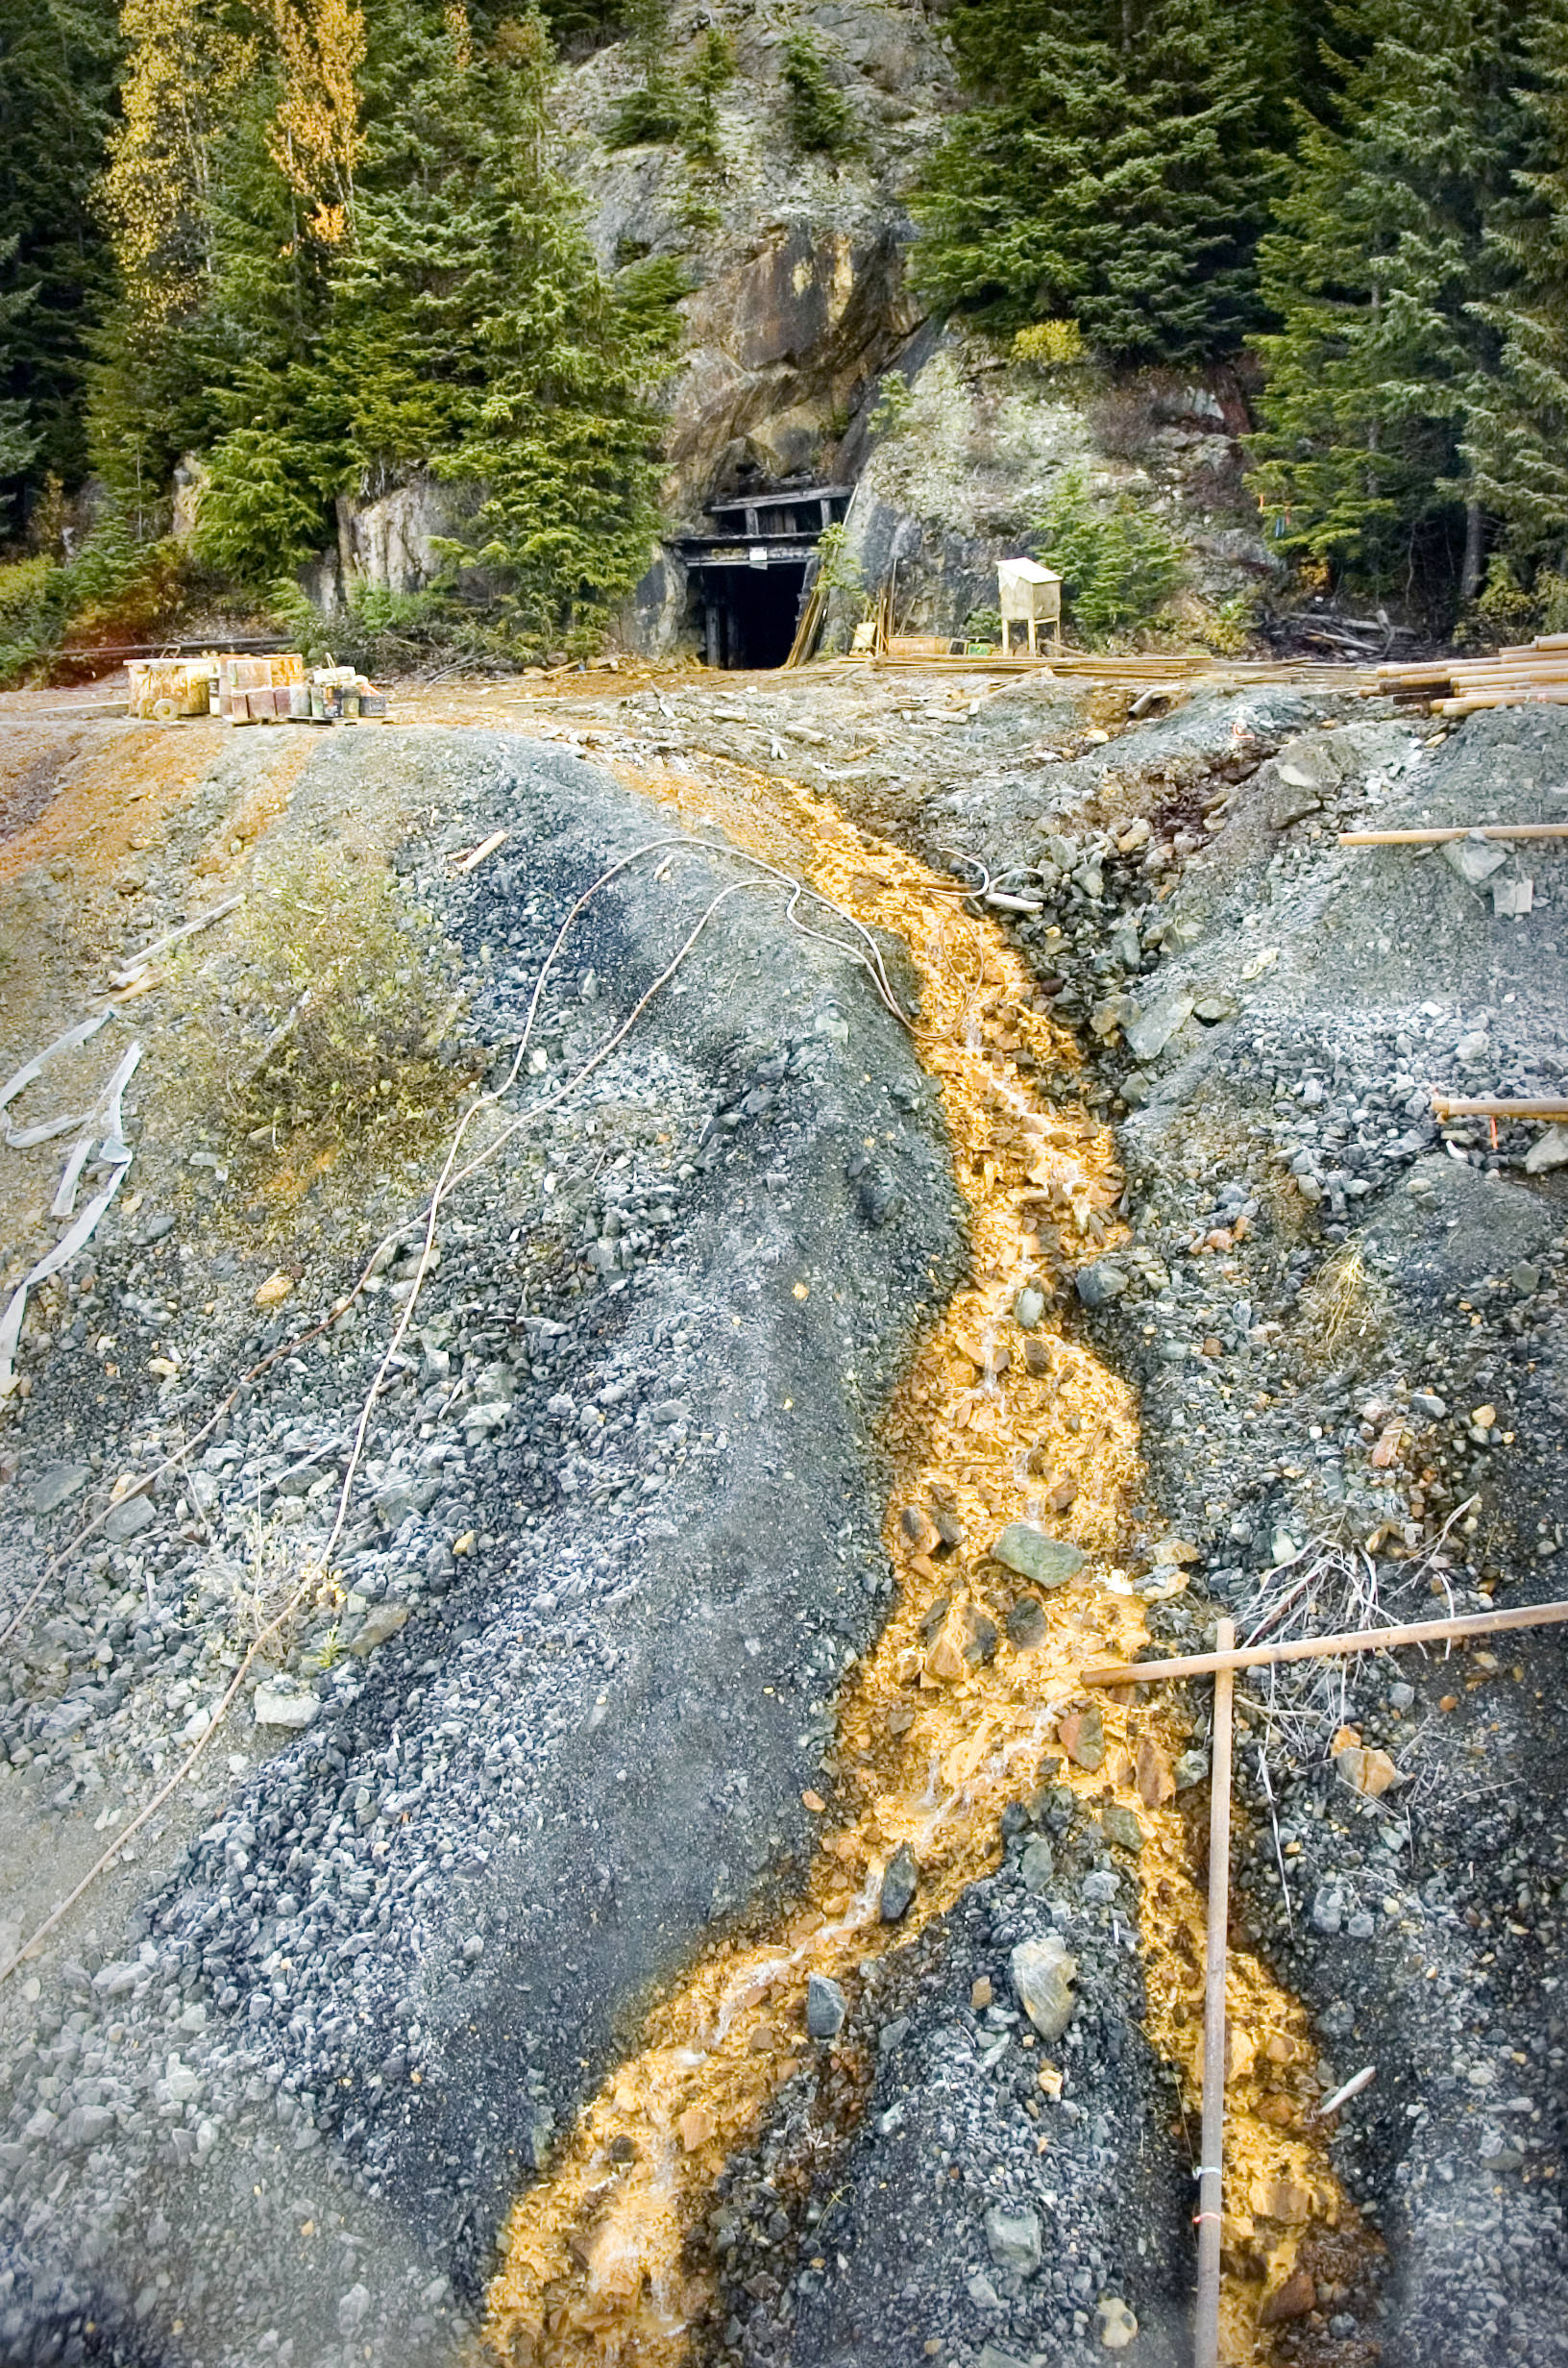 Acid contaminated water runs from the entrance of the Tulsequah Chief Mine in Canada in October 2018. Eight U.S. senators sent a letter Thursday to British Columbia, Canada's premier asking for more transboundary water oversight. (Michael Penn | Juneau Empire)